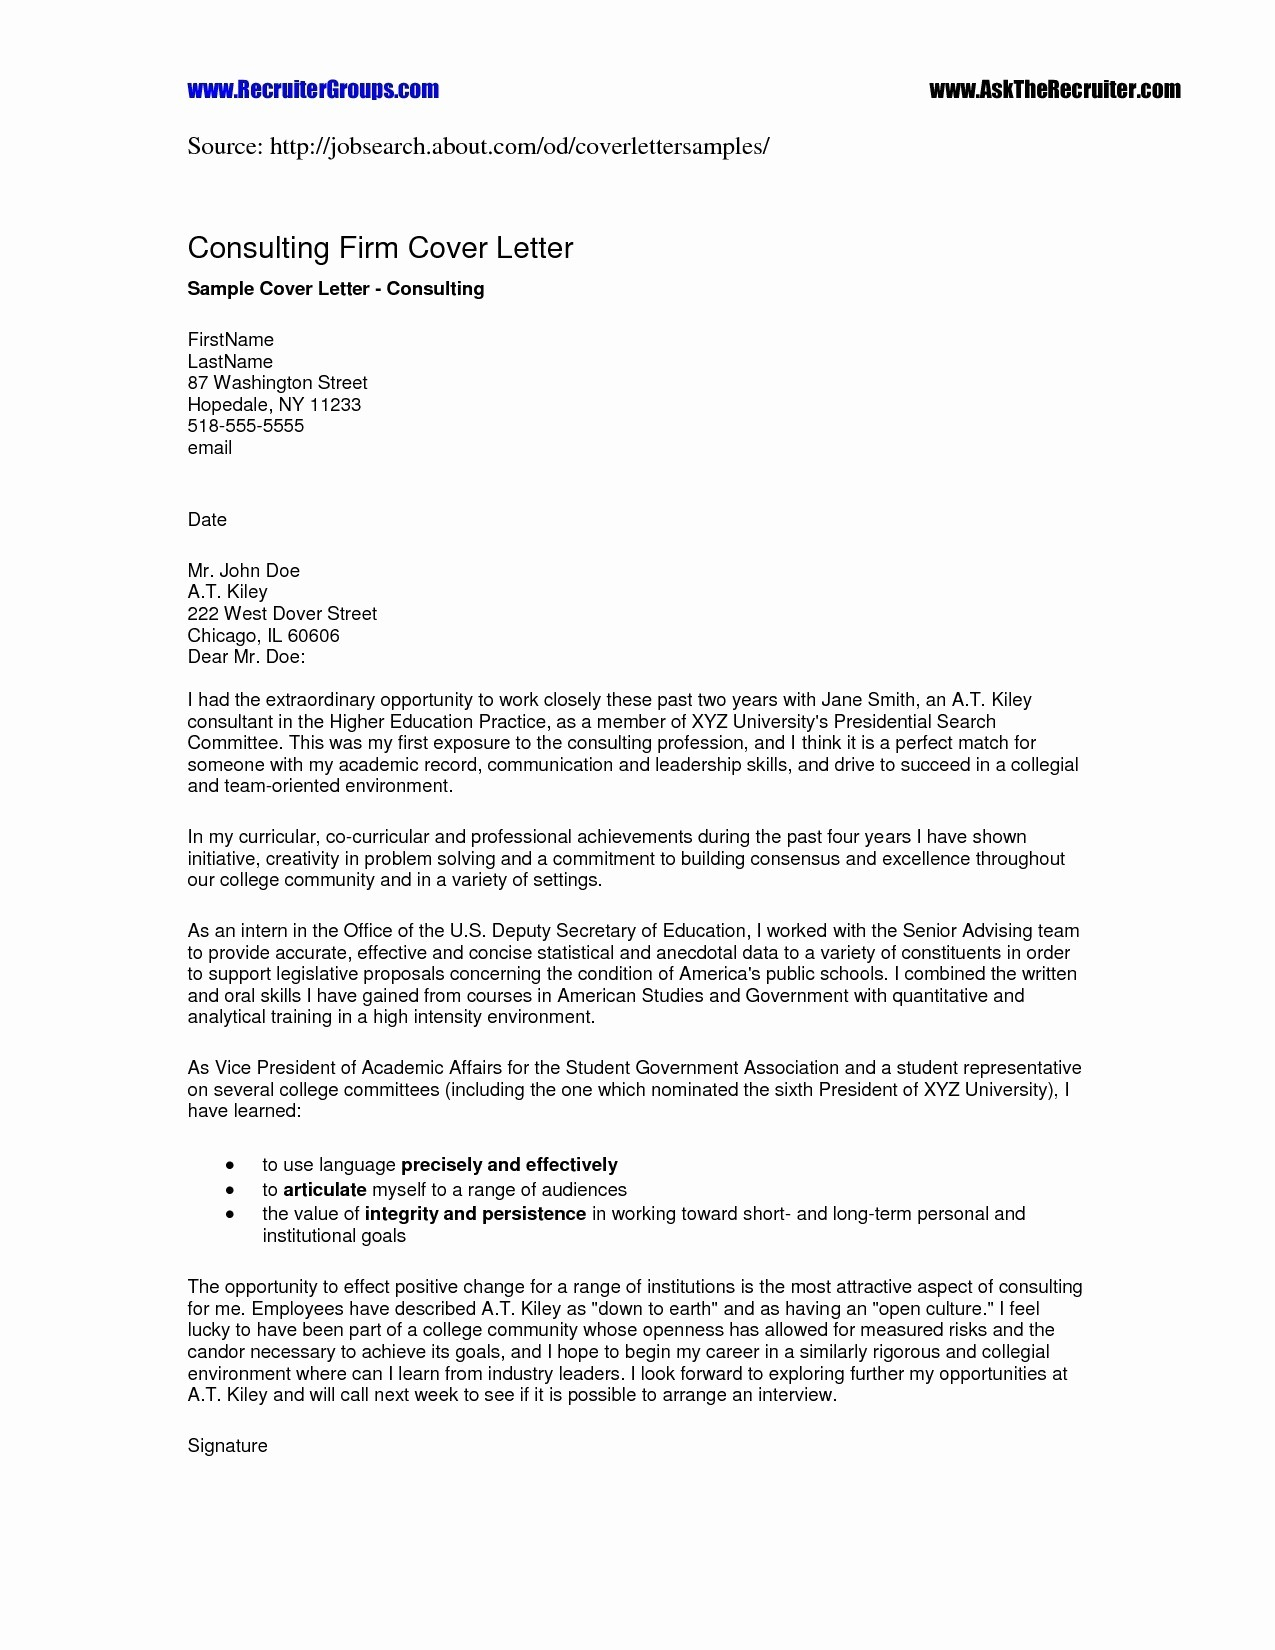 Cover Letter Template Doc - Examples Cover Letters for Banking Jobs Best Cover Letter for